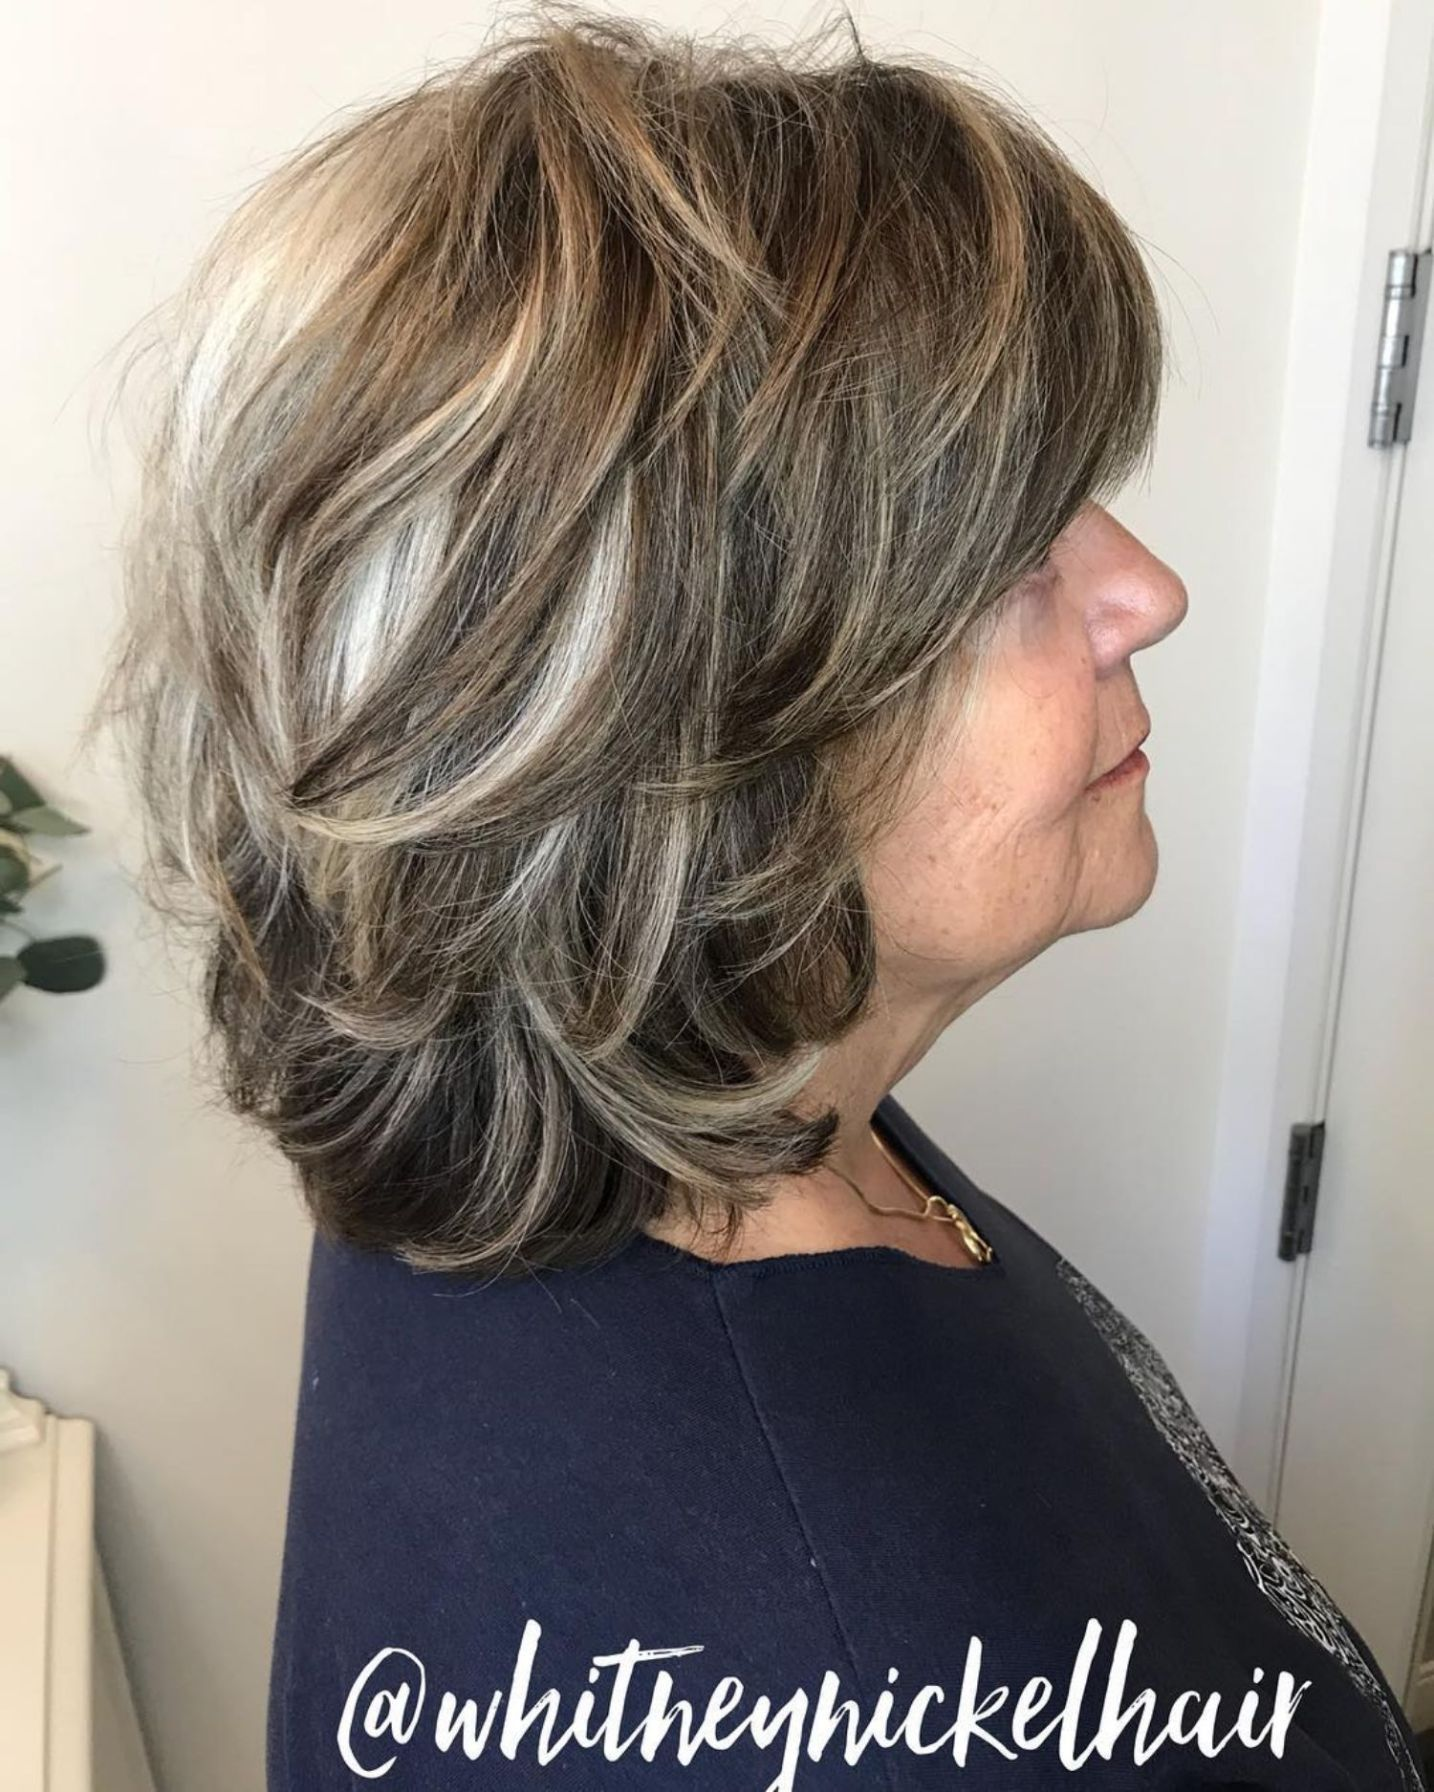 80 Best Modern Hairstyles And Haircuts For Women Over 50 Haircut For Thick Hair Modern Hairstyles Thick Hair Styles